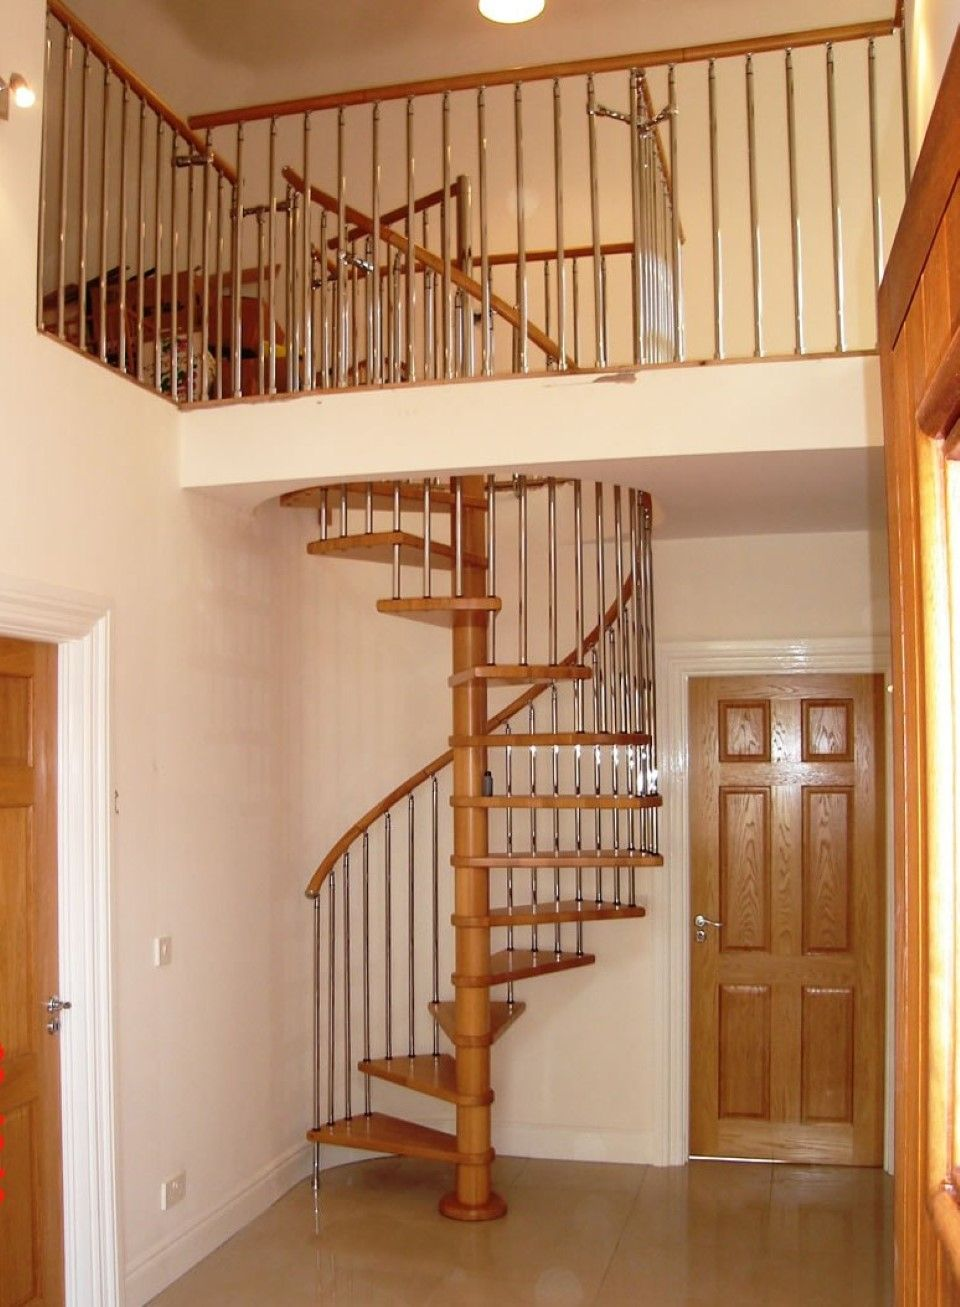 Natural Wood Interior Door Feat Simple Spiral Staircase Design And | Wooden Spiral Staircase For Sale | 3 Floor | Twist | Wrought Iron | 36 Inch Diameter | Free Standing